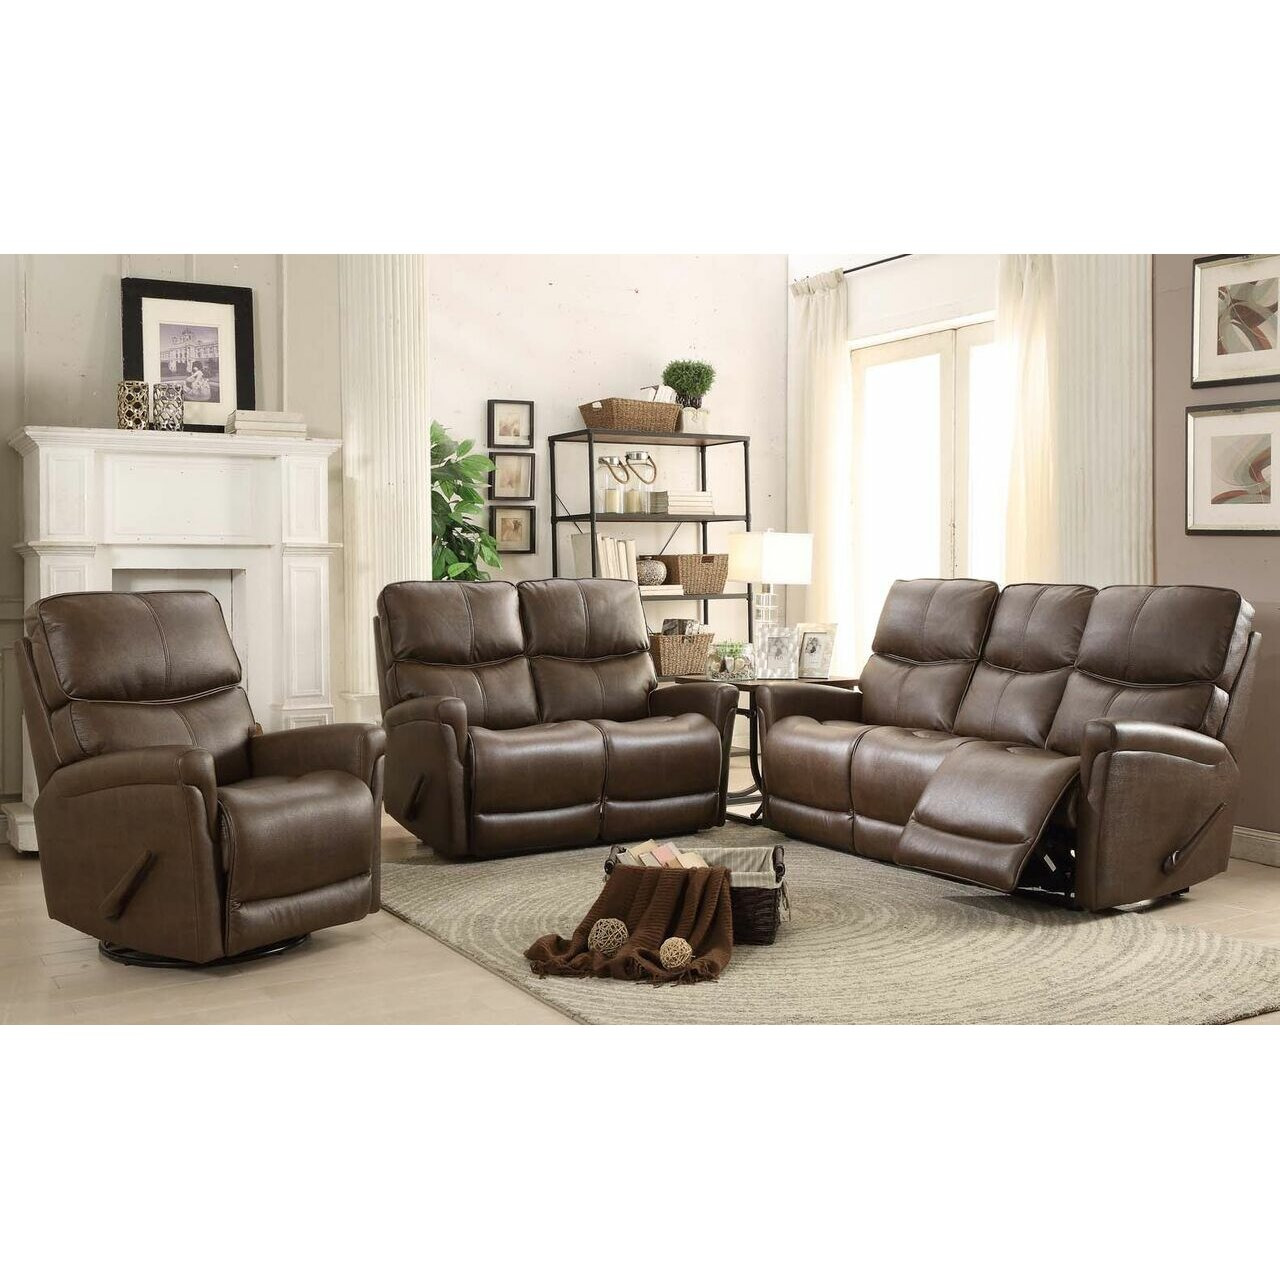 Easy Living Cologne 3 Piece Reclining Living Room Set